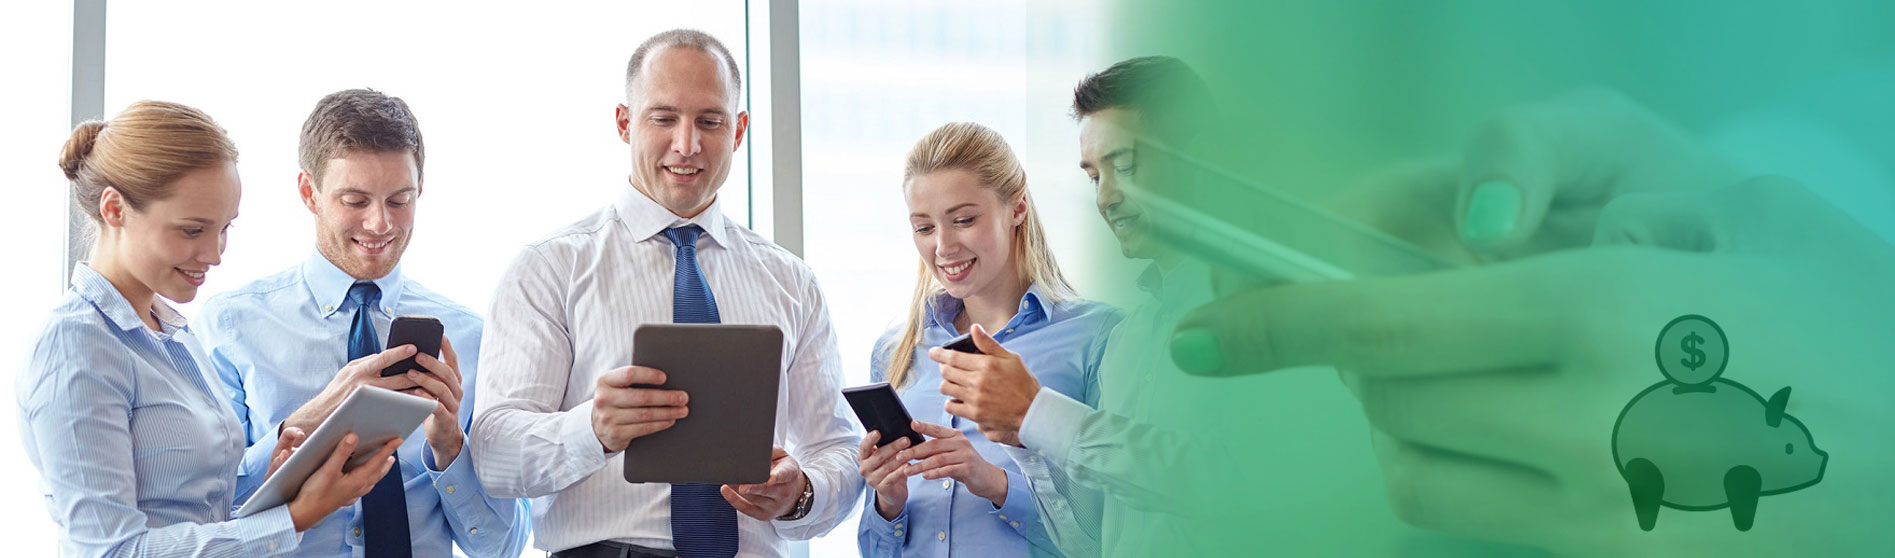 Corporate communication system is an essential element of any company and yet it rarely ends up being one of the priorities.